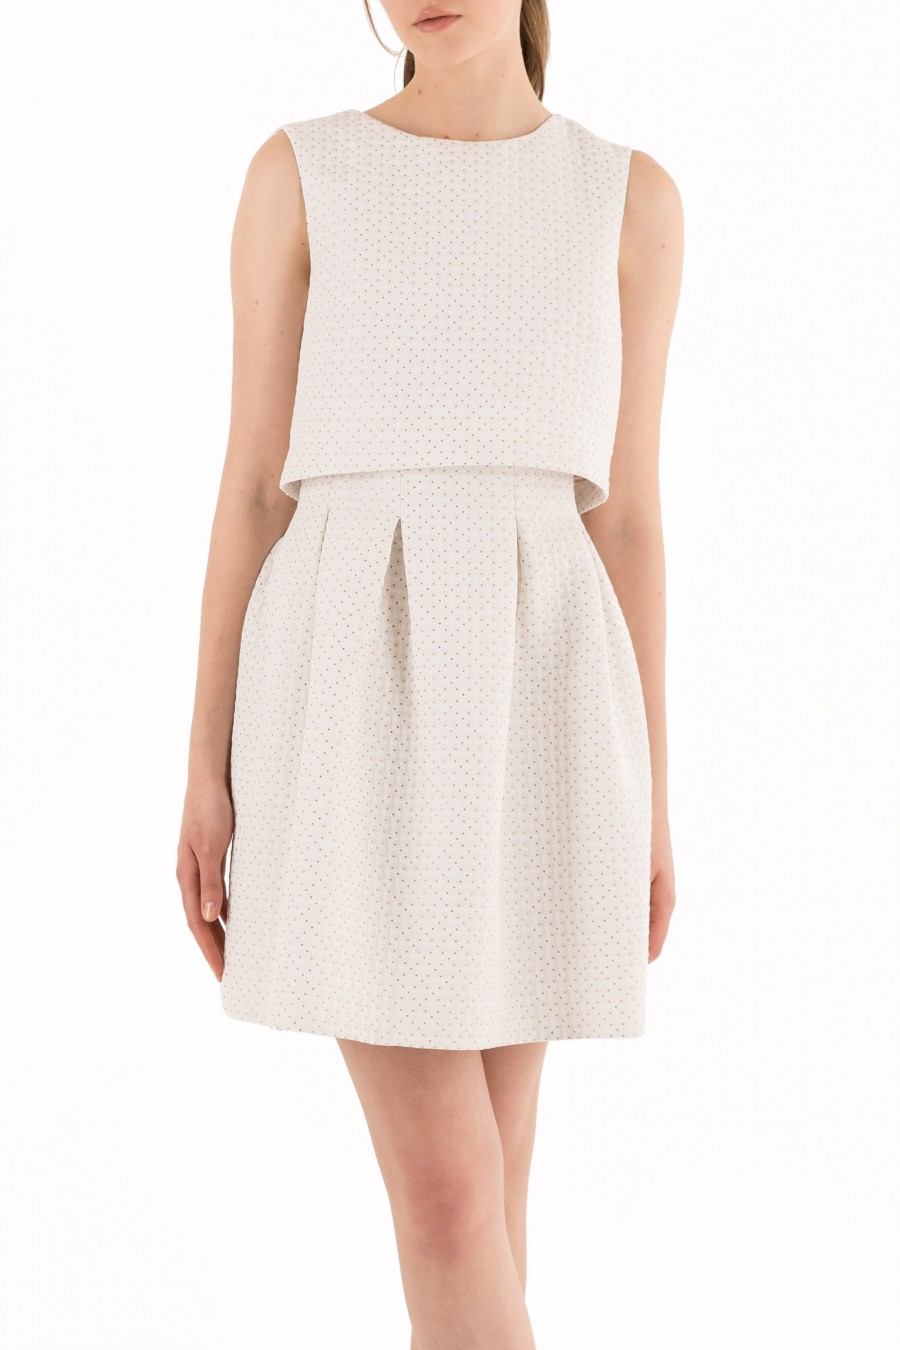 White pouf dress